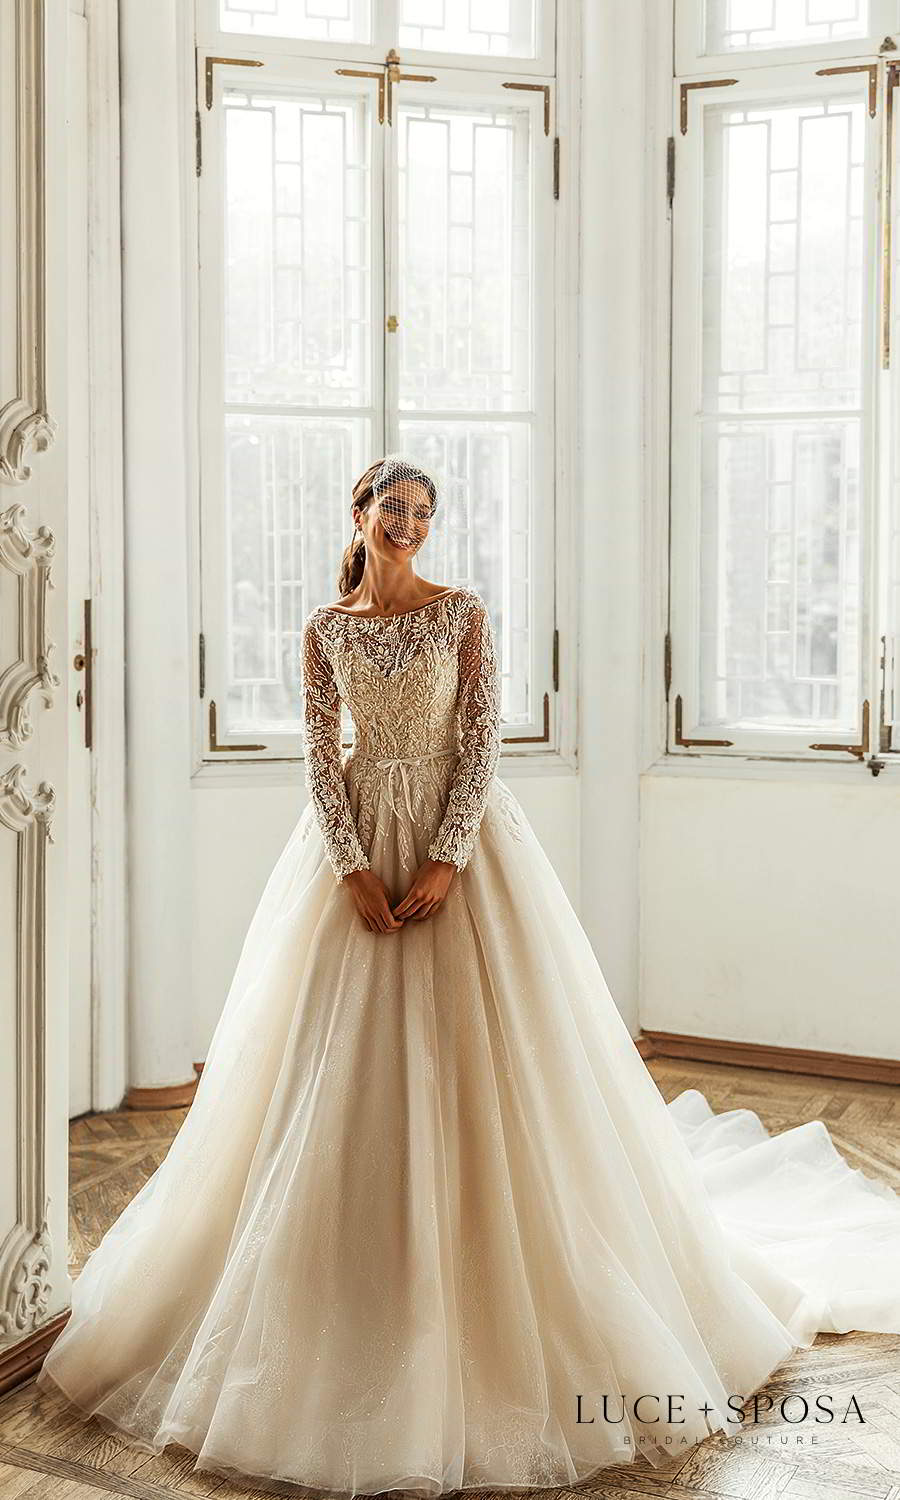 luce sposa 2021 shades of couture bridal long sleeve bateau neckline heavily embellished bodice a line ball gown wedding dress cathedral train champagne (charlotte) mv